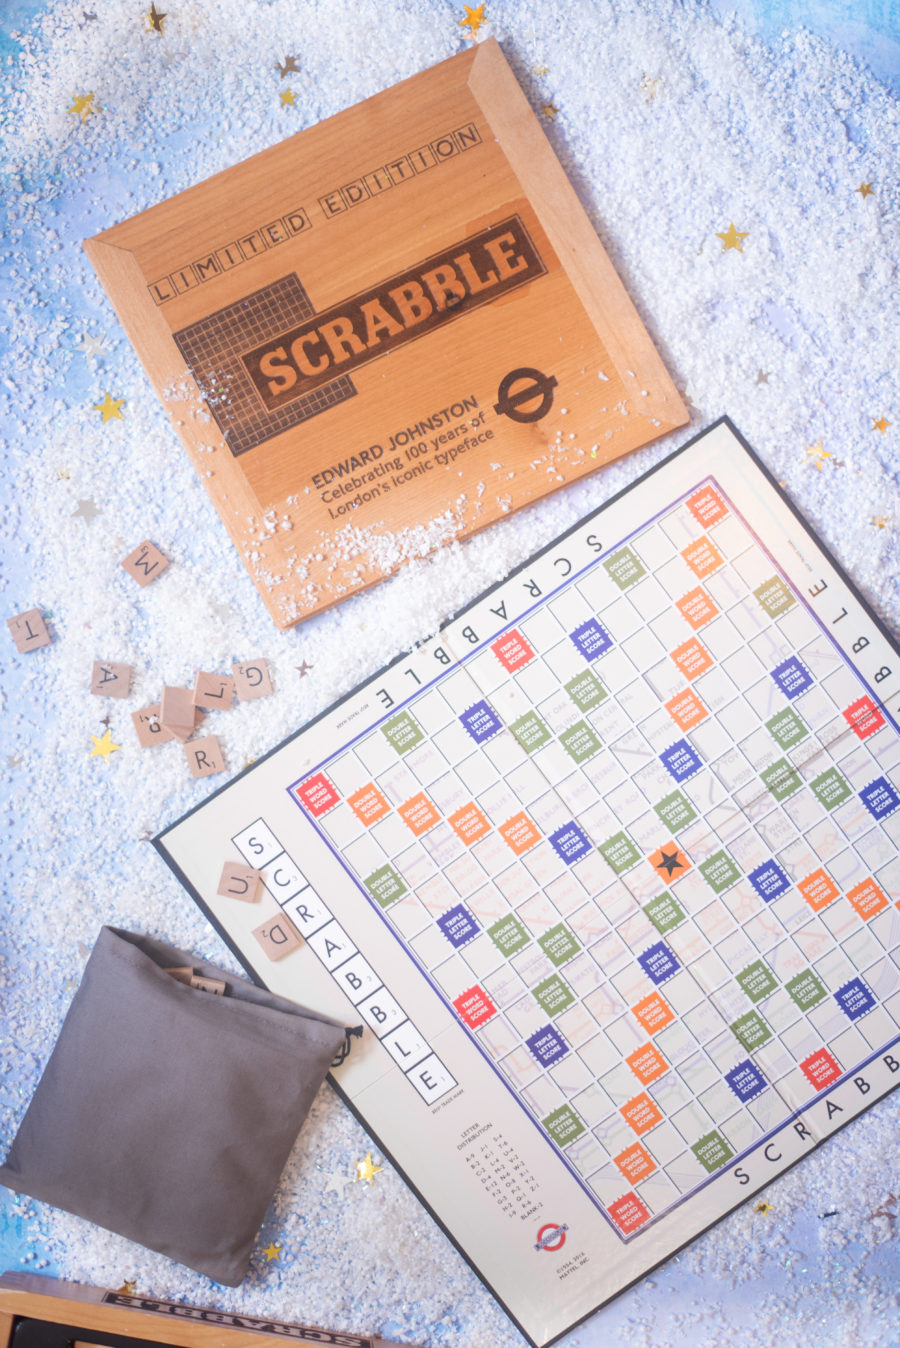 scrabble limited edition london transport edition game